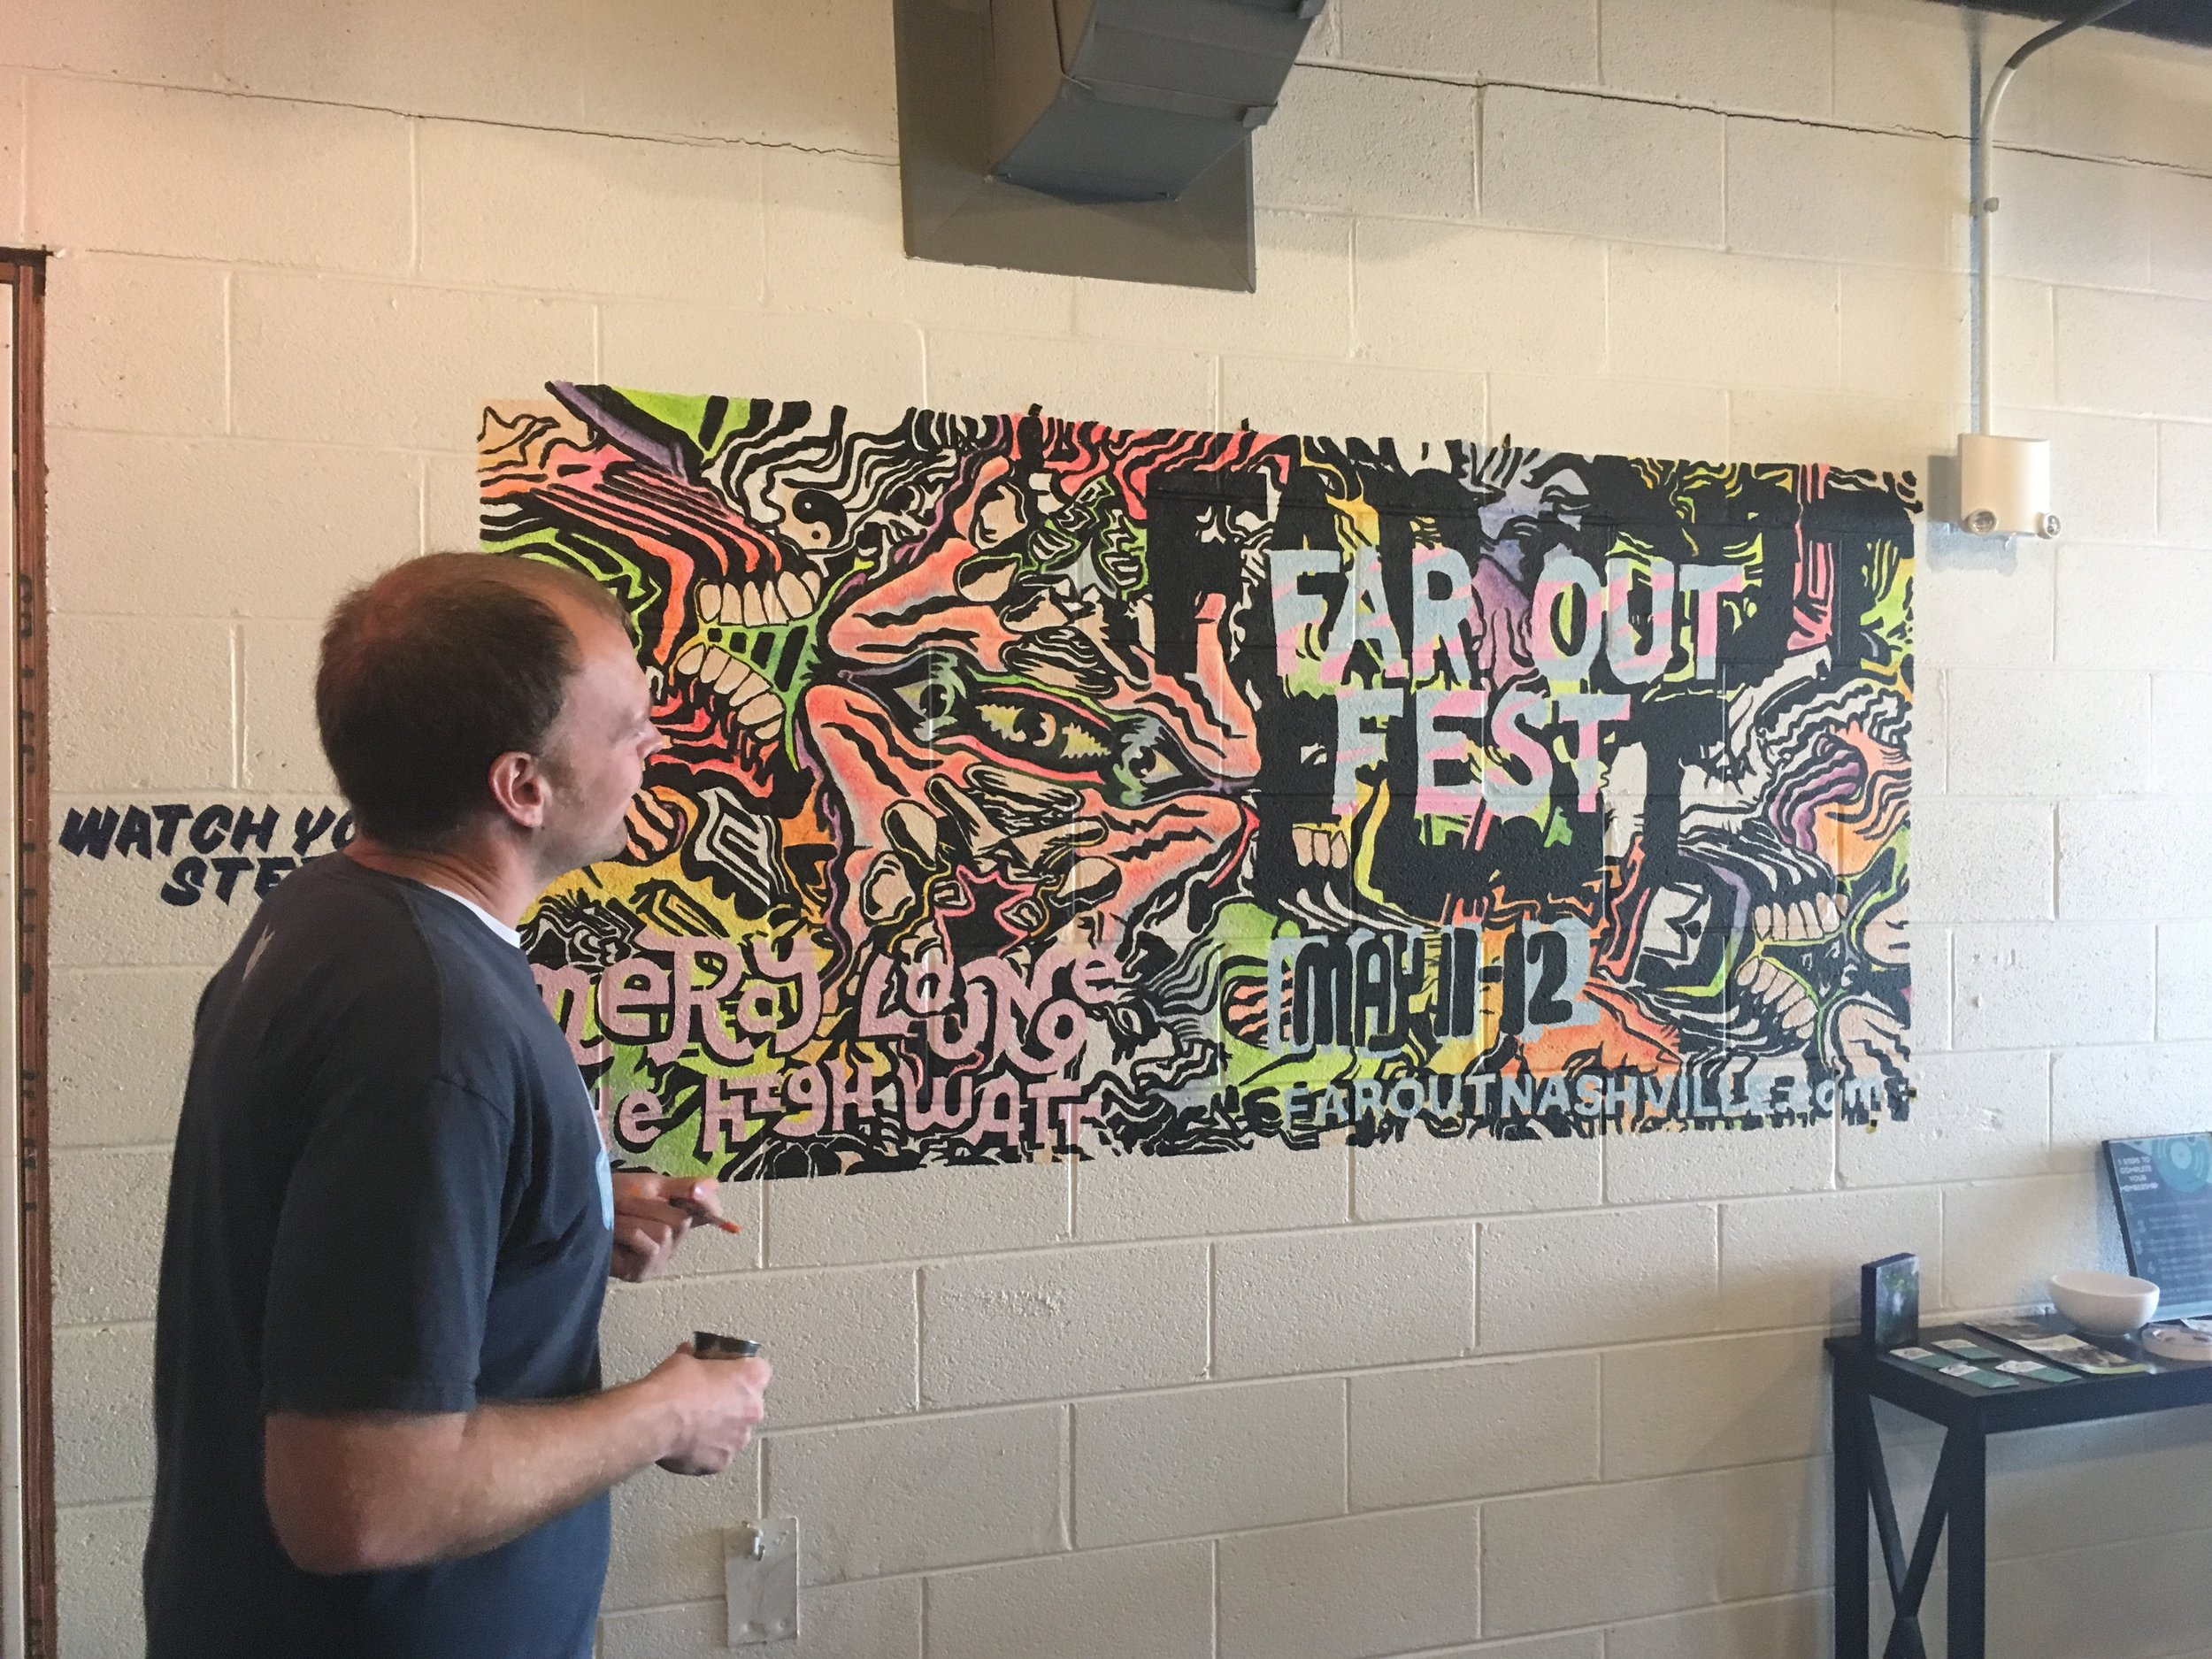 Lance Turner with the Far Out mural